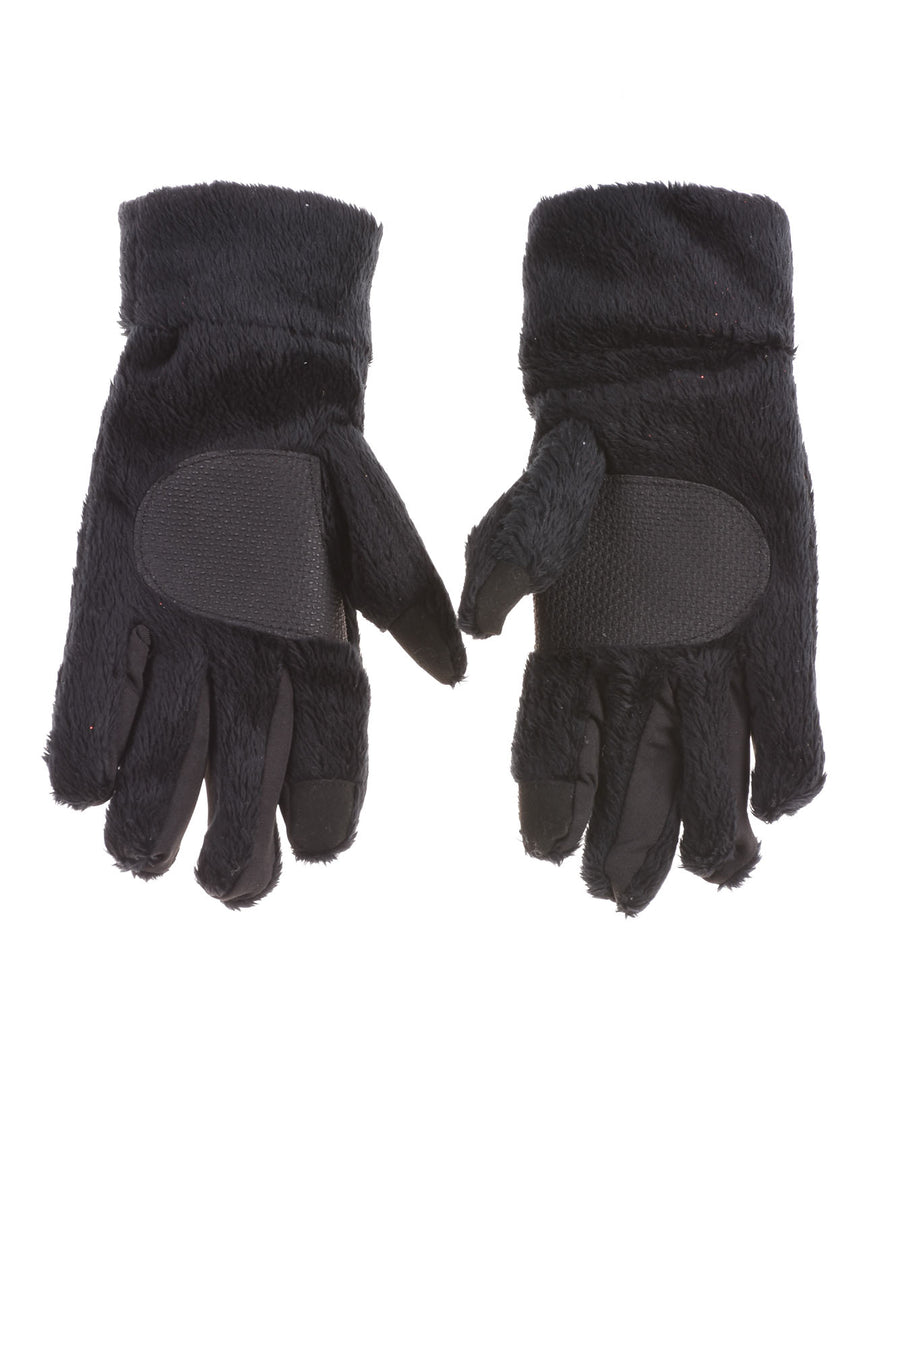 USED Justice Girl's Gloves N/A Black